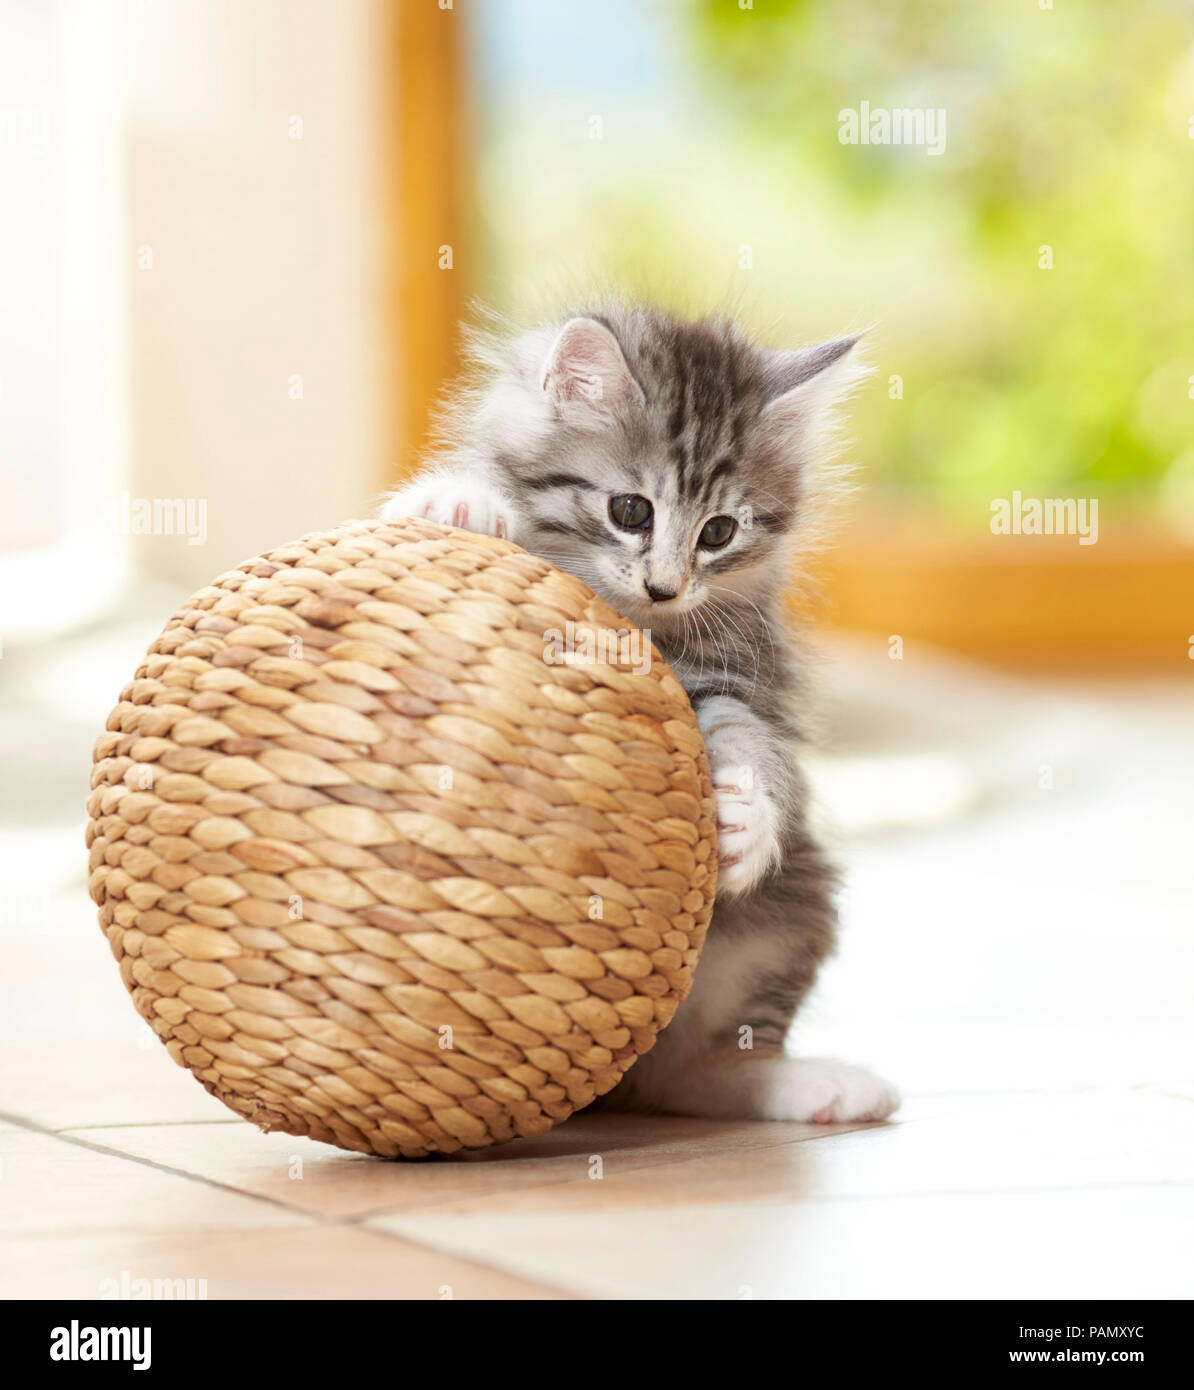 Norwegian Forest Cat. Kitten playing with a ball. Germany - Stock Image